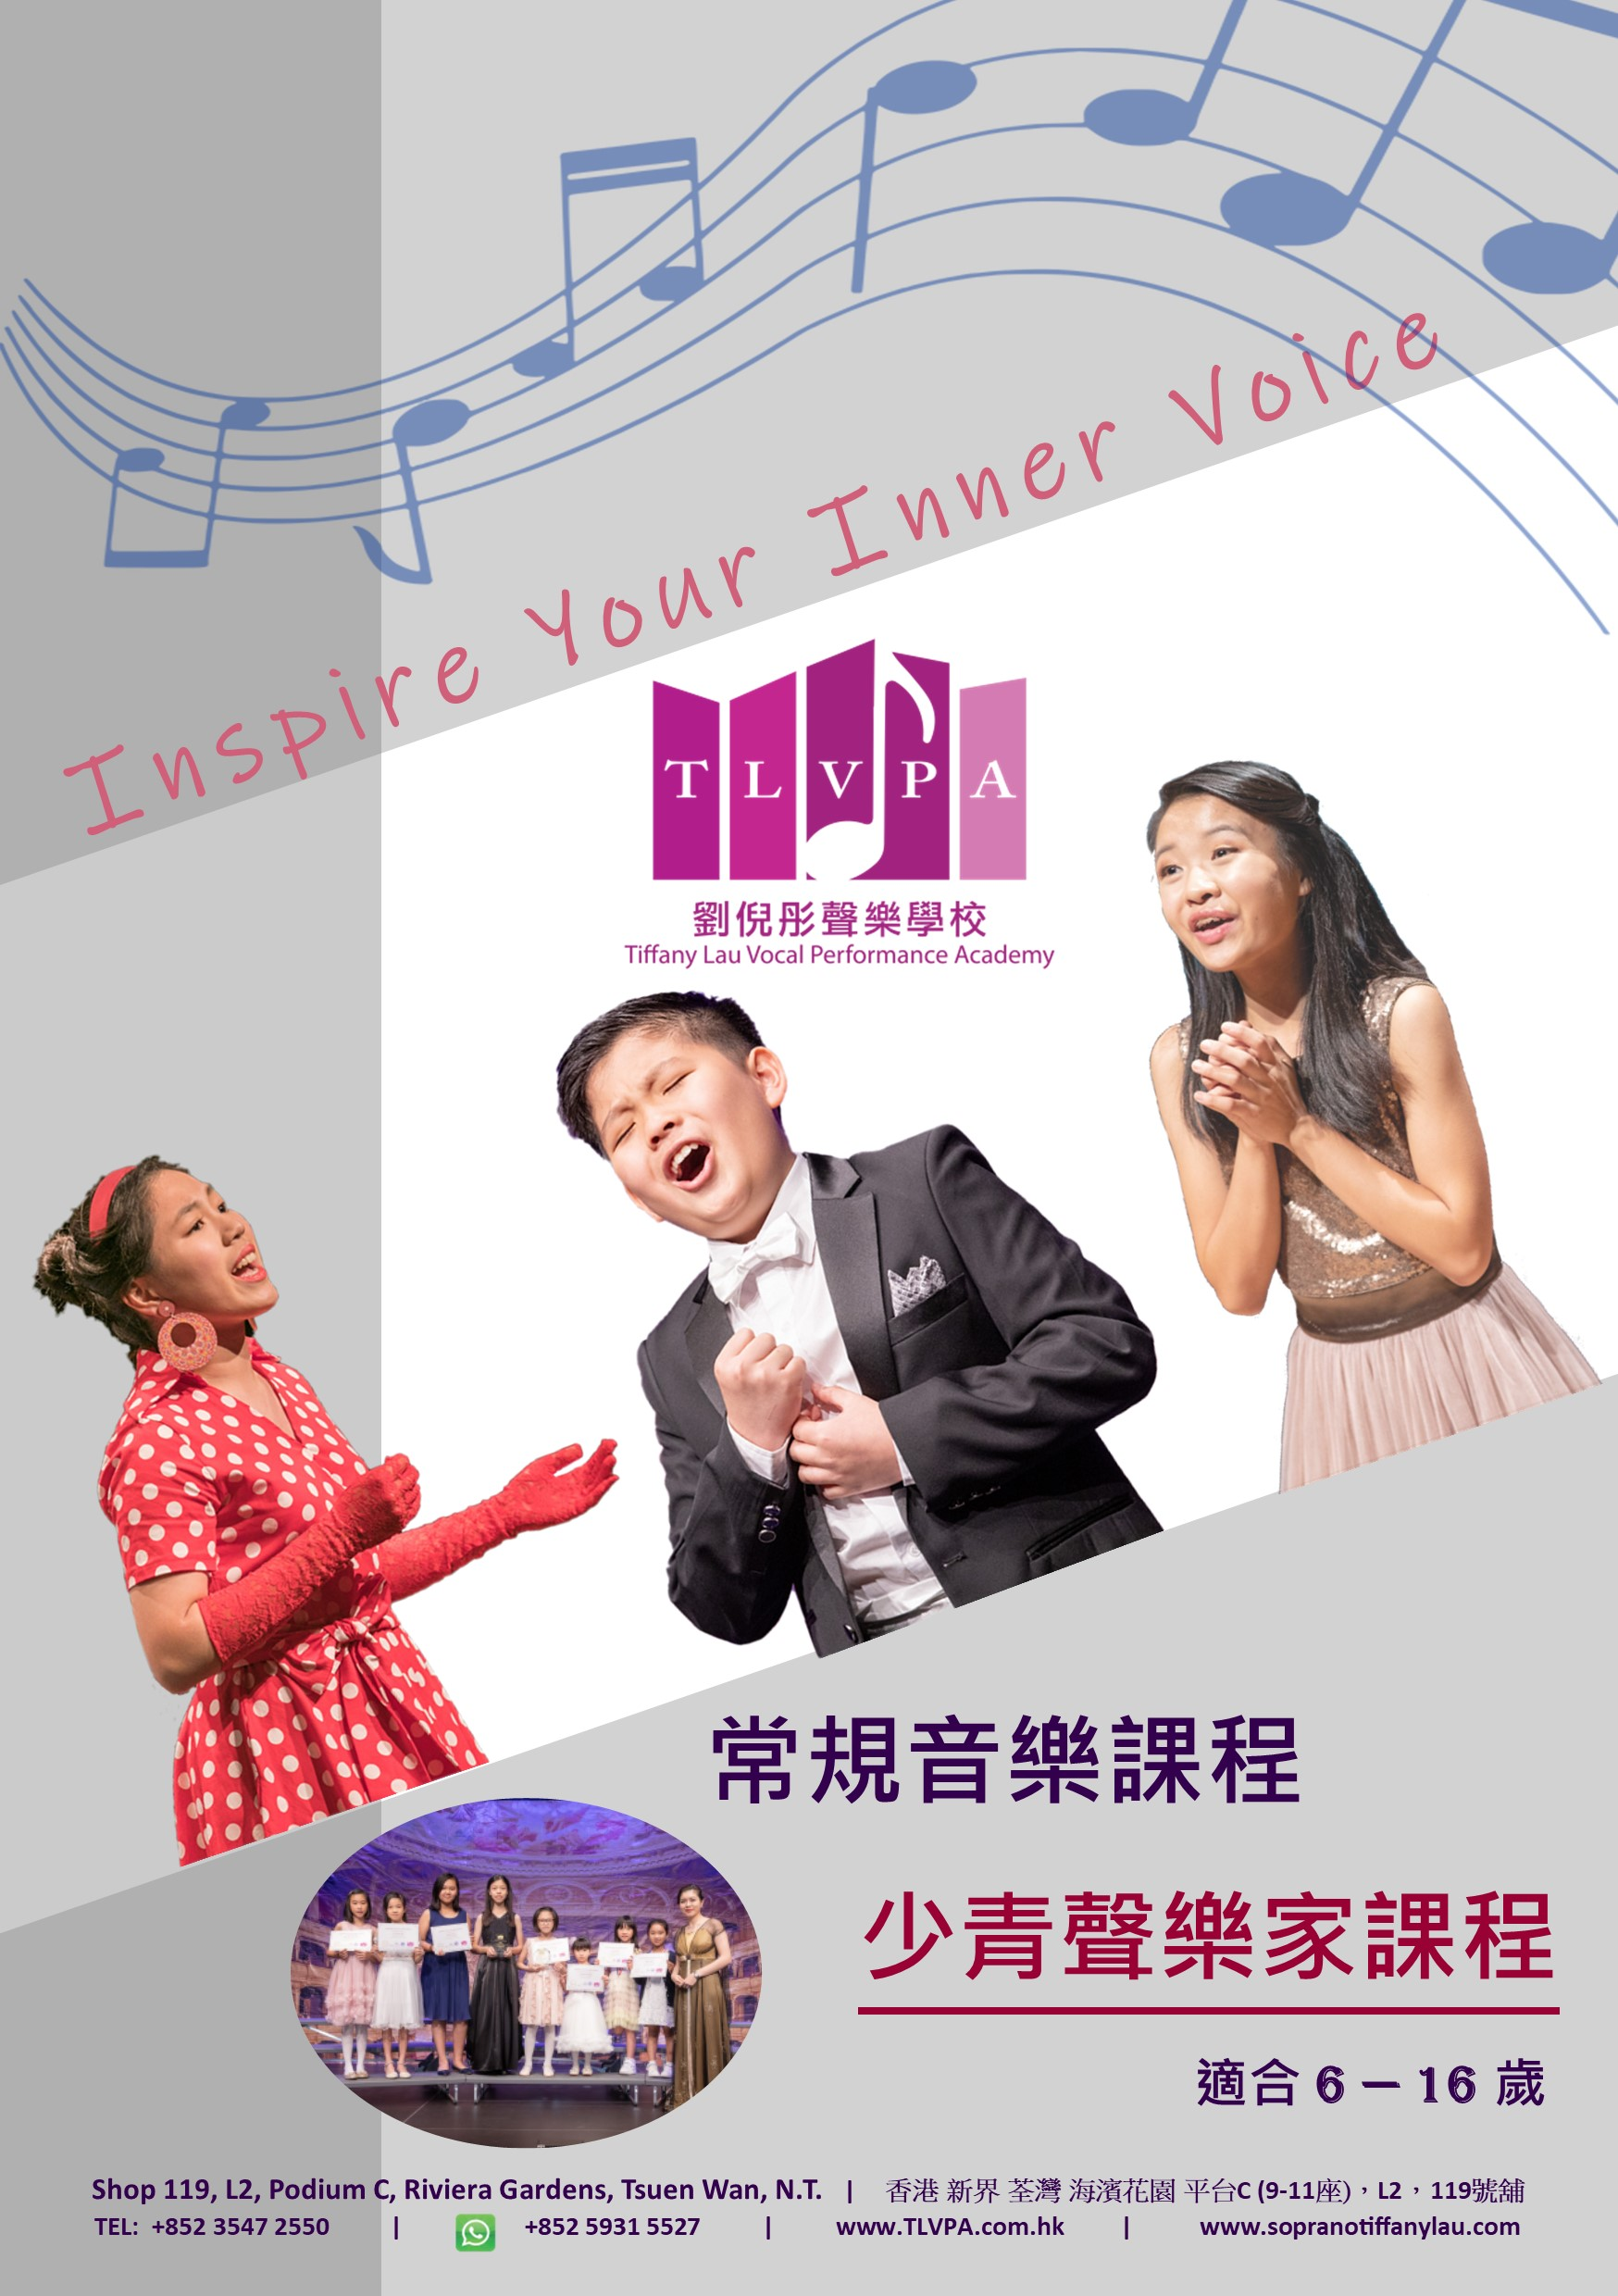 New Youth Singer Programme A5 - 6Dec2020